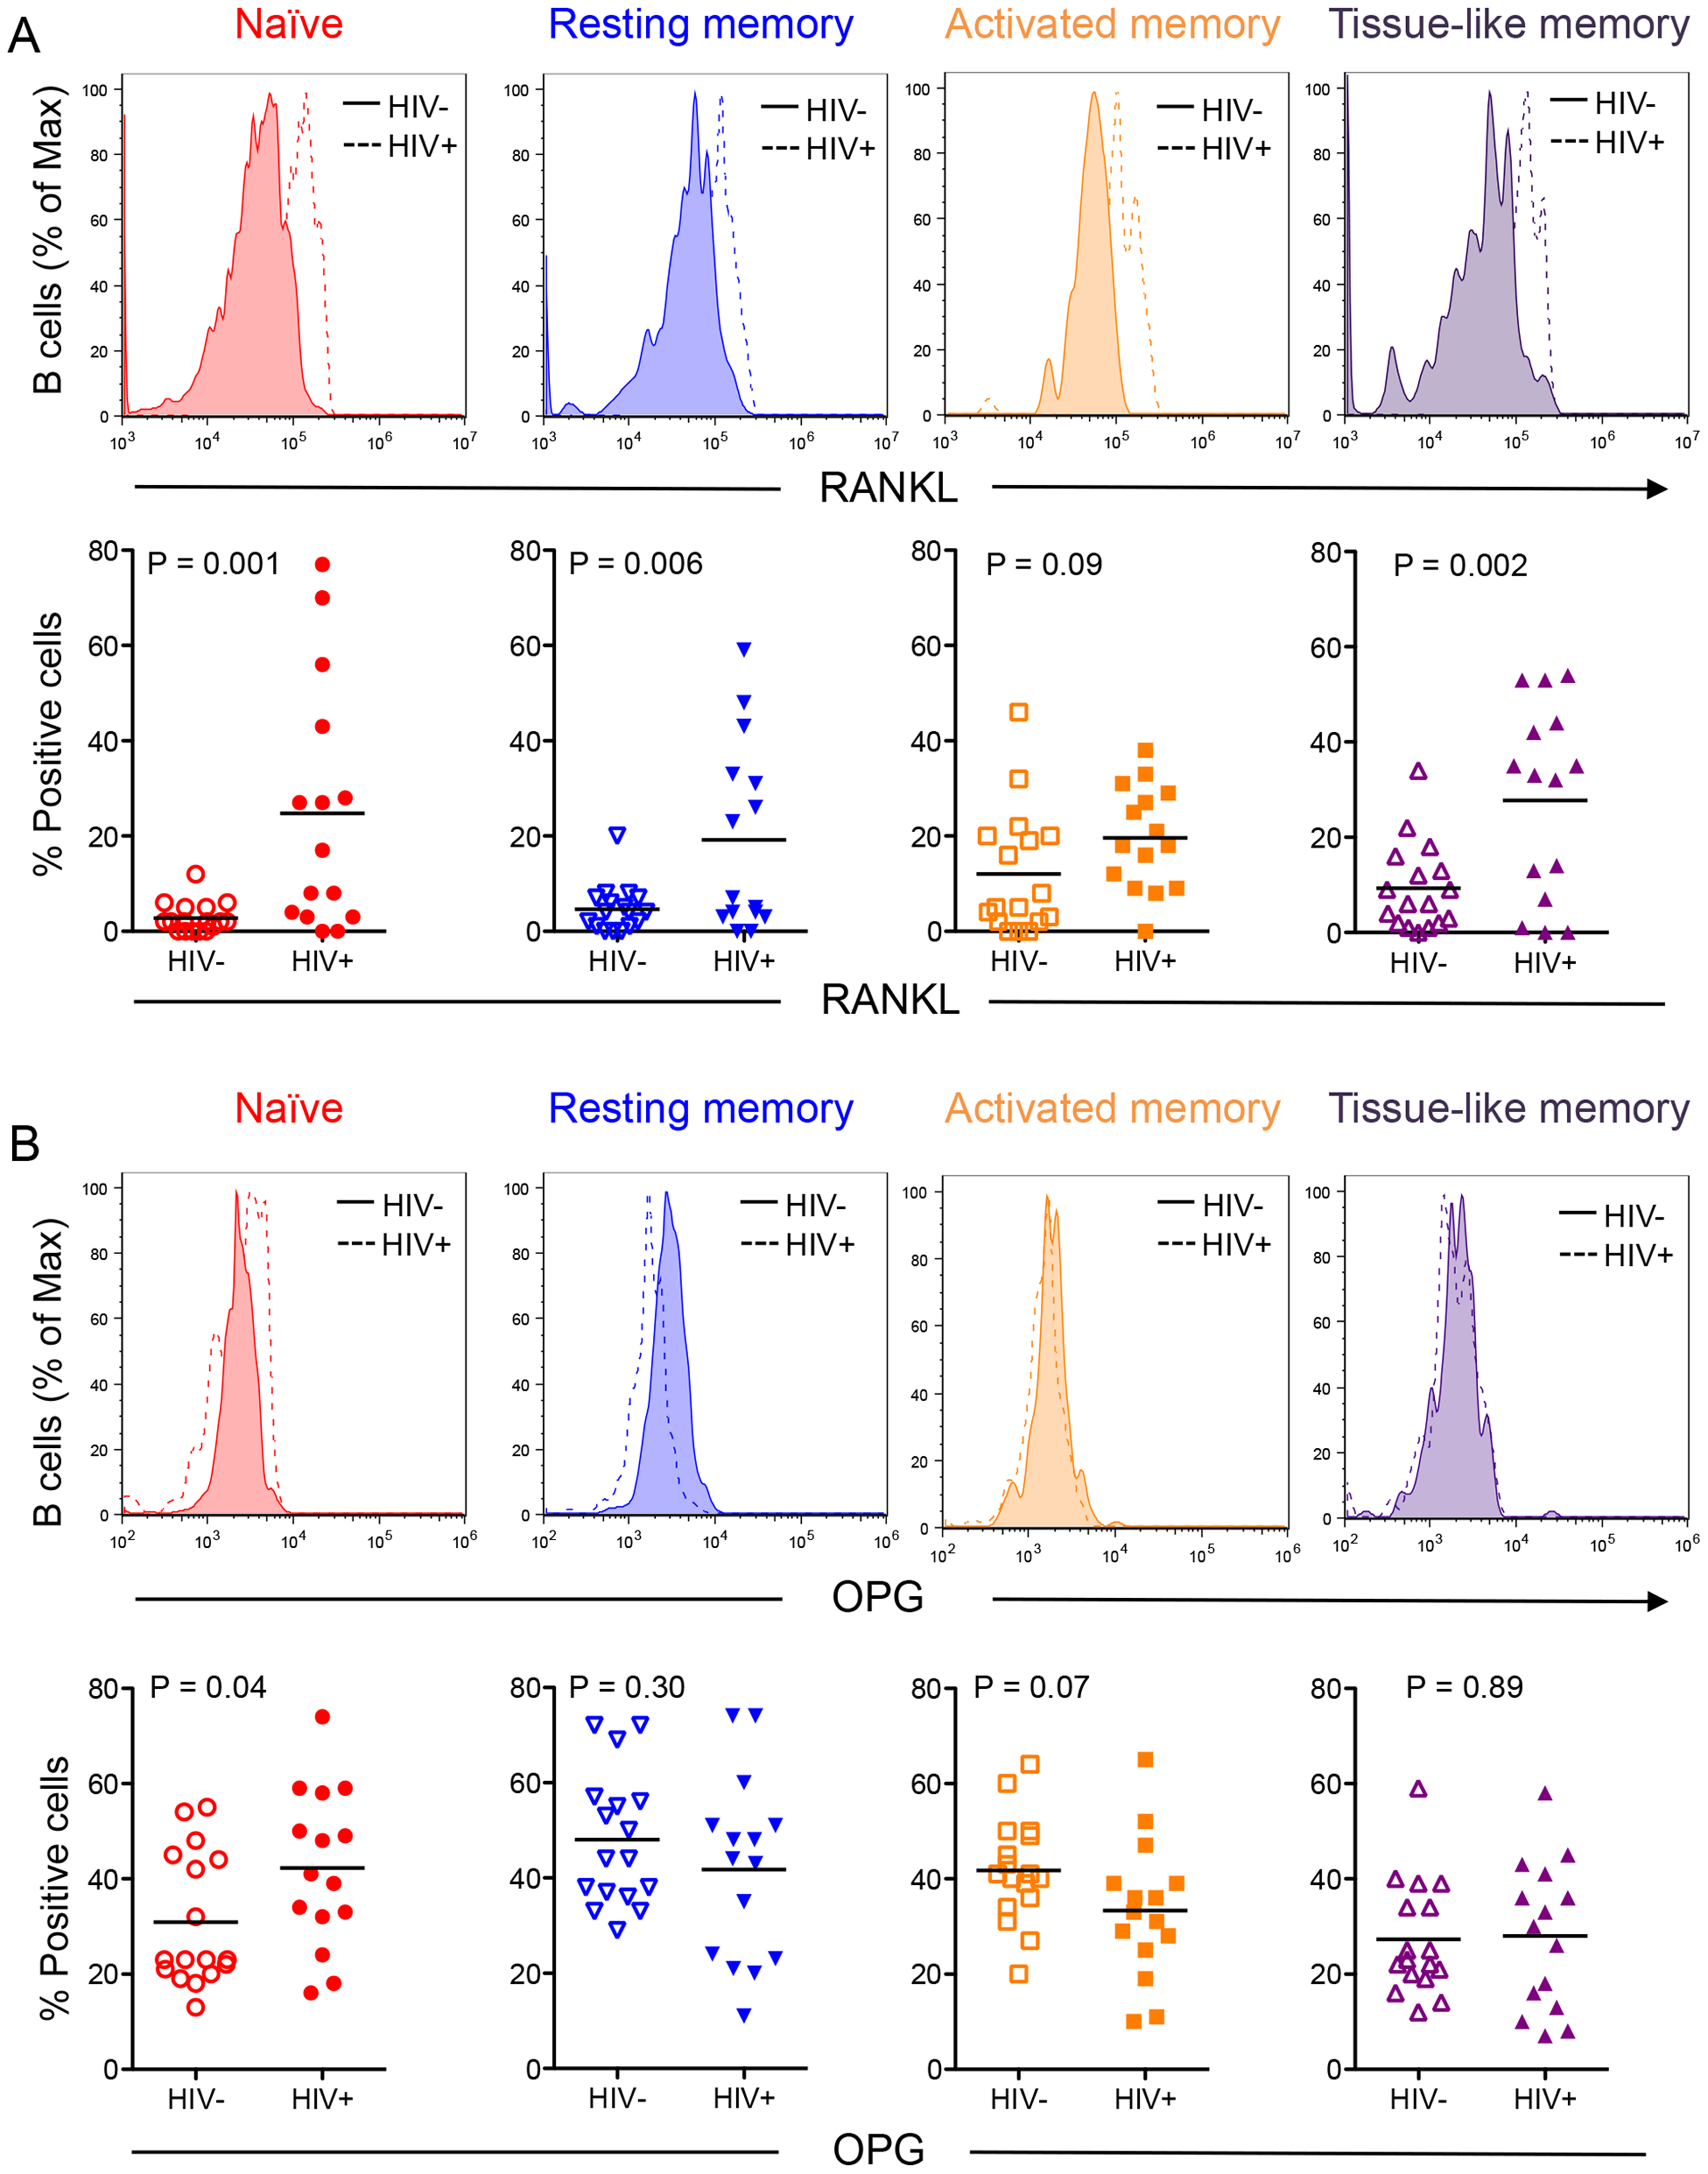 Differential B cell subset RANKL and OPG expression in HIV-negative and HIV-positive individuals.